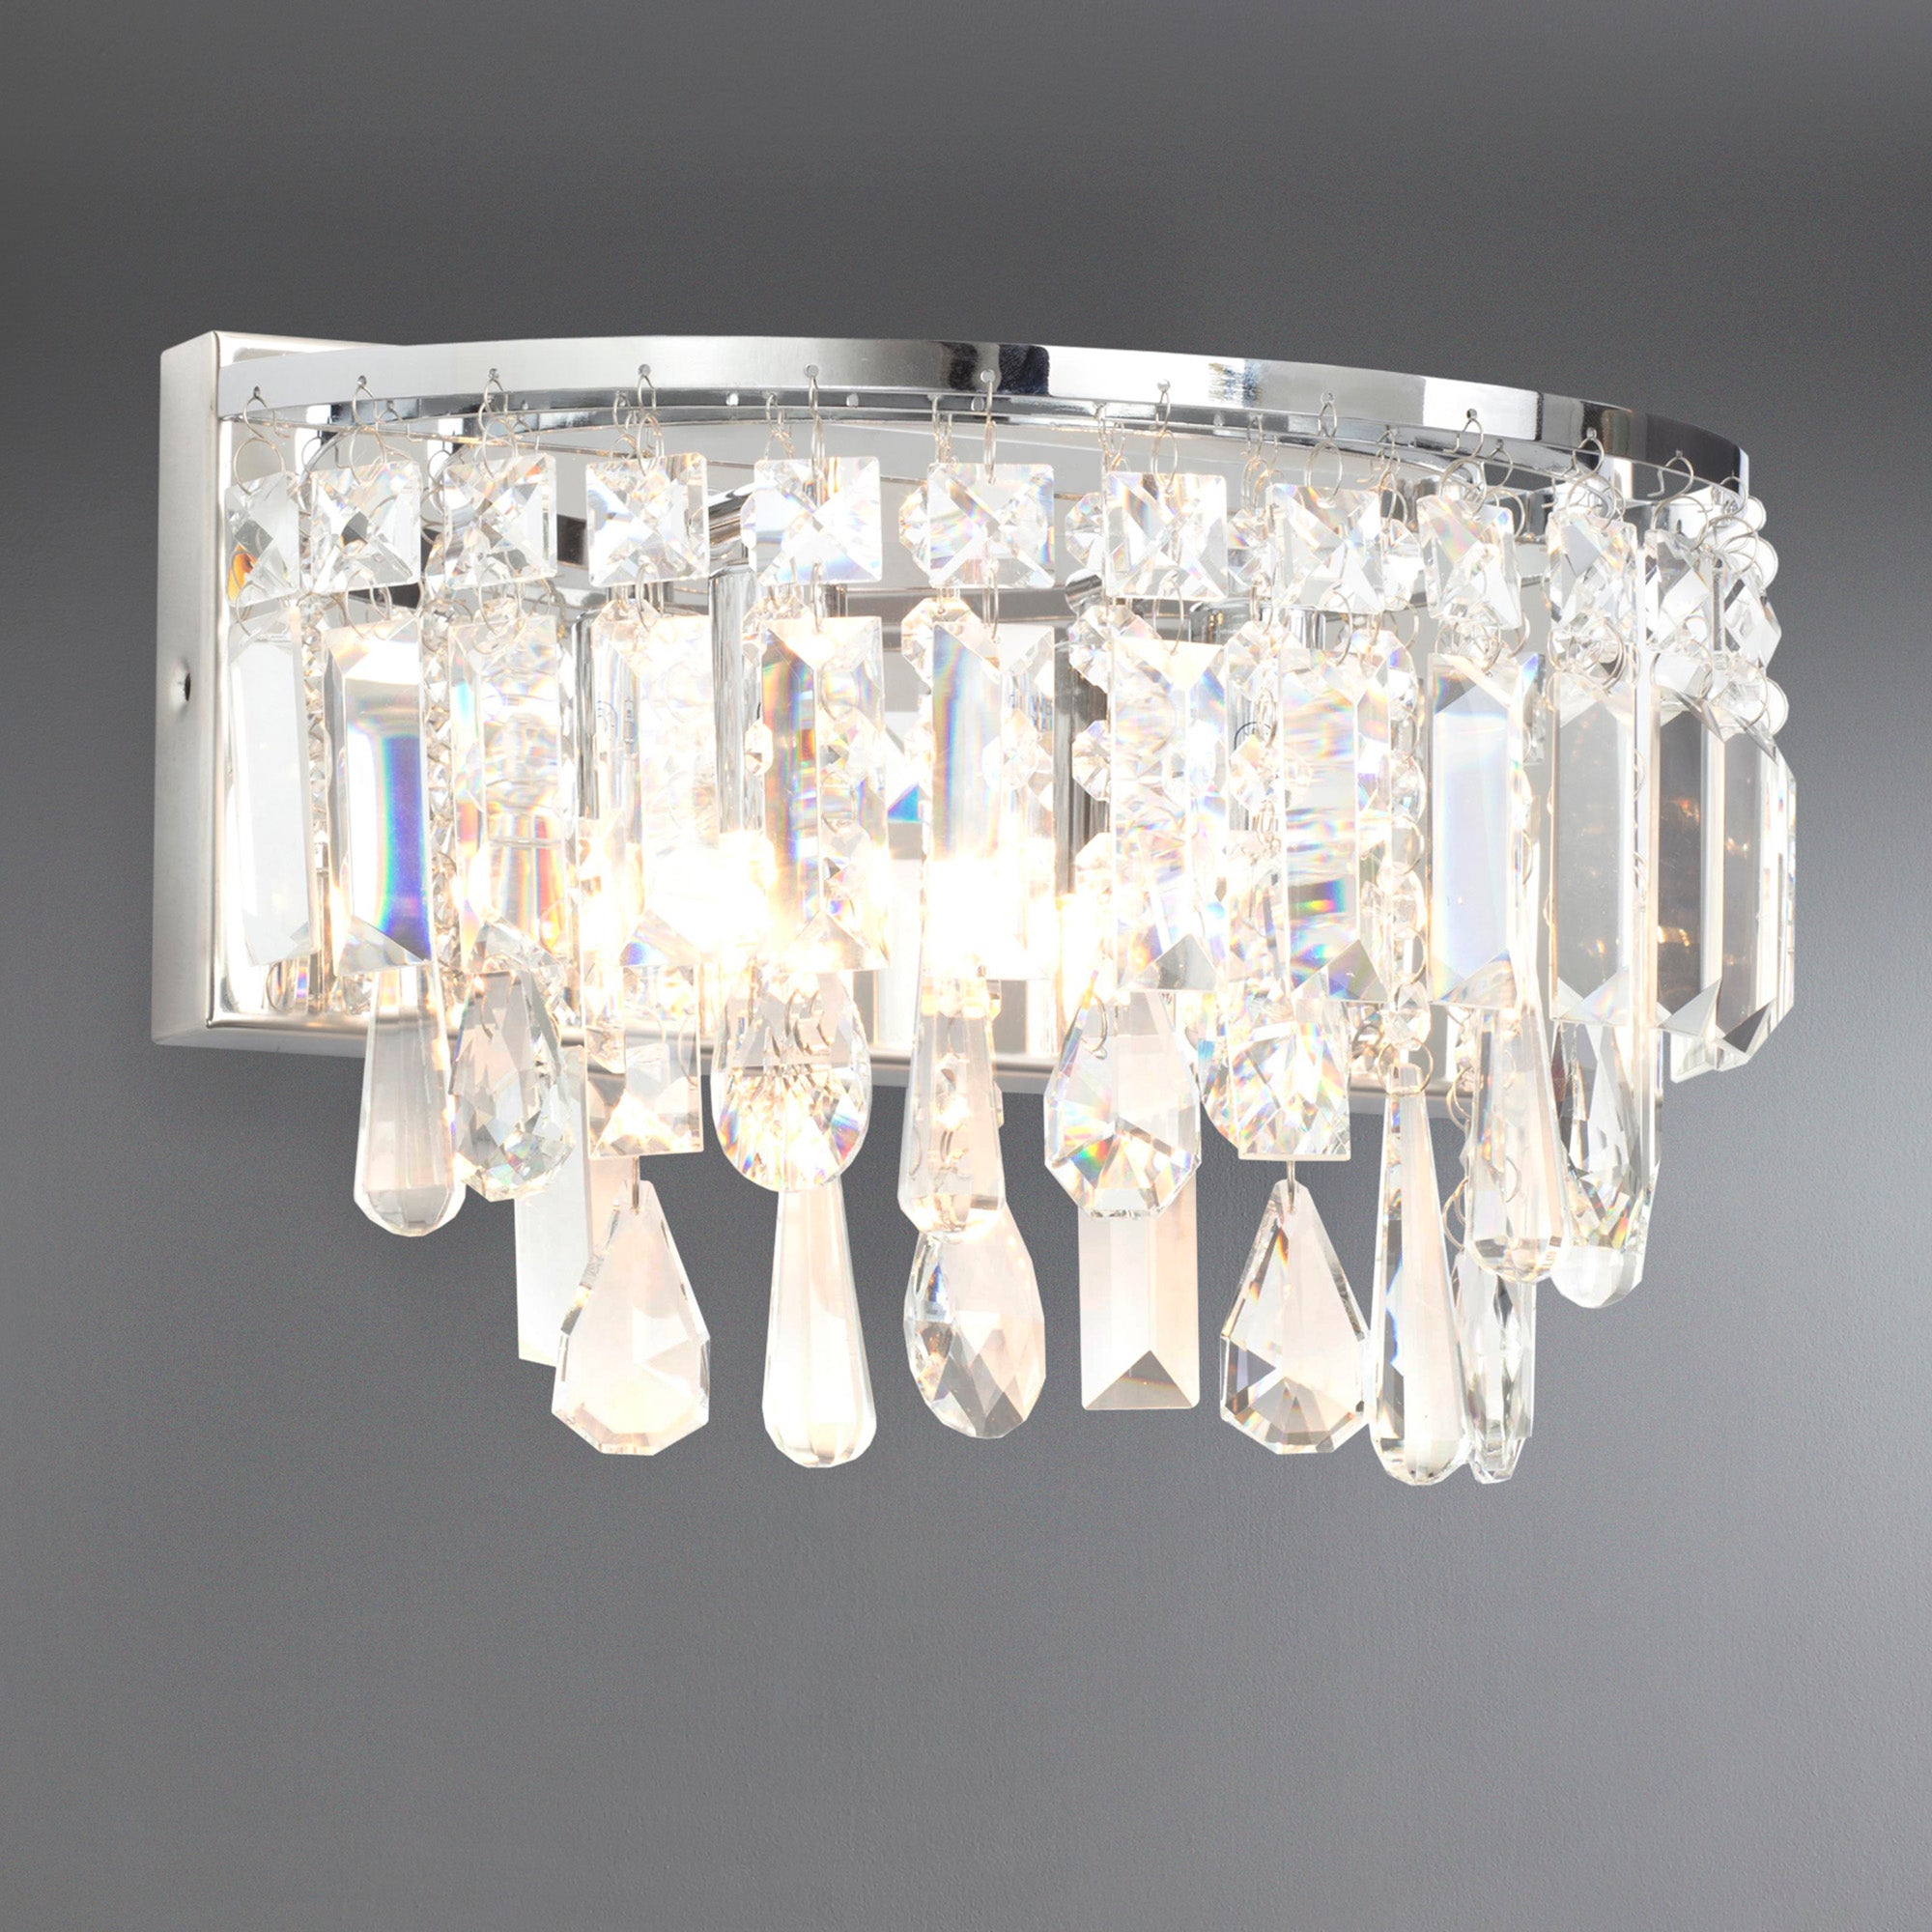 Image of Marquis by Waterford Bresna Chrome Wall Light Chrome